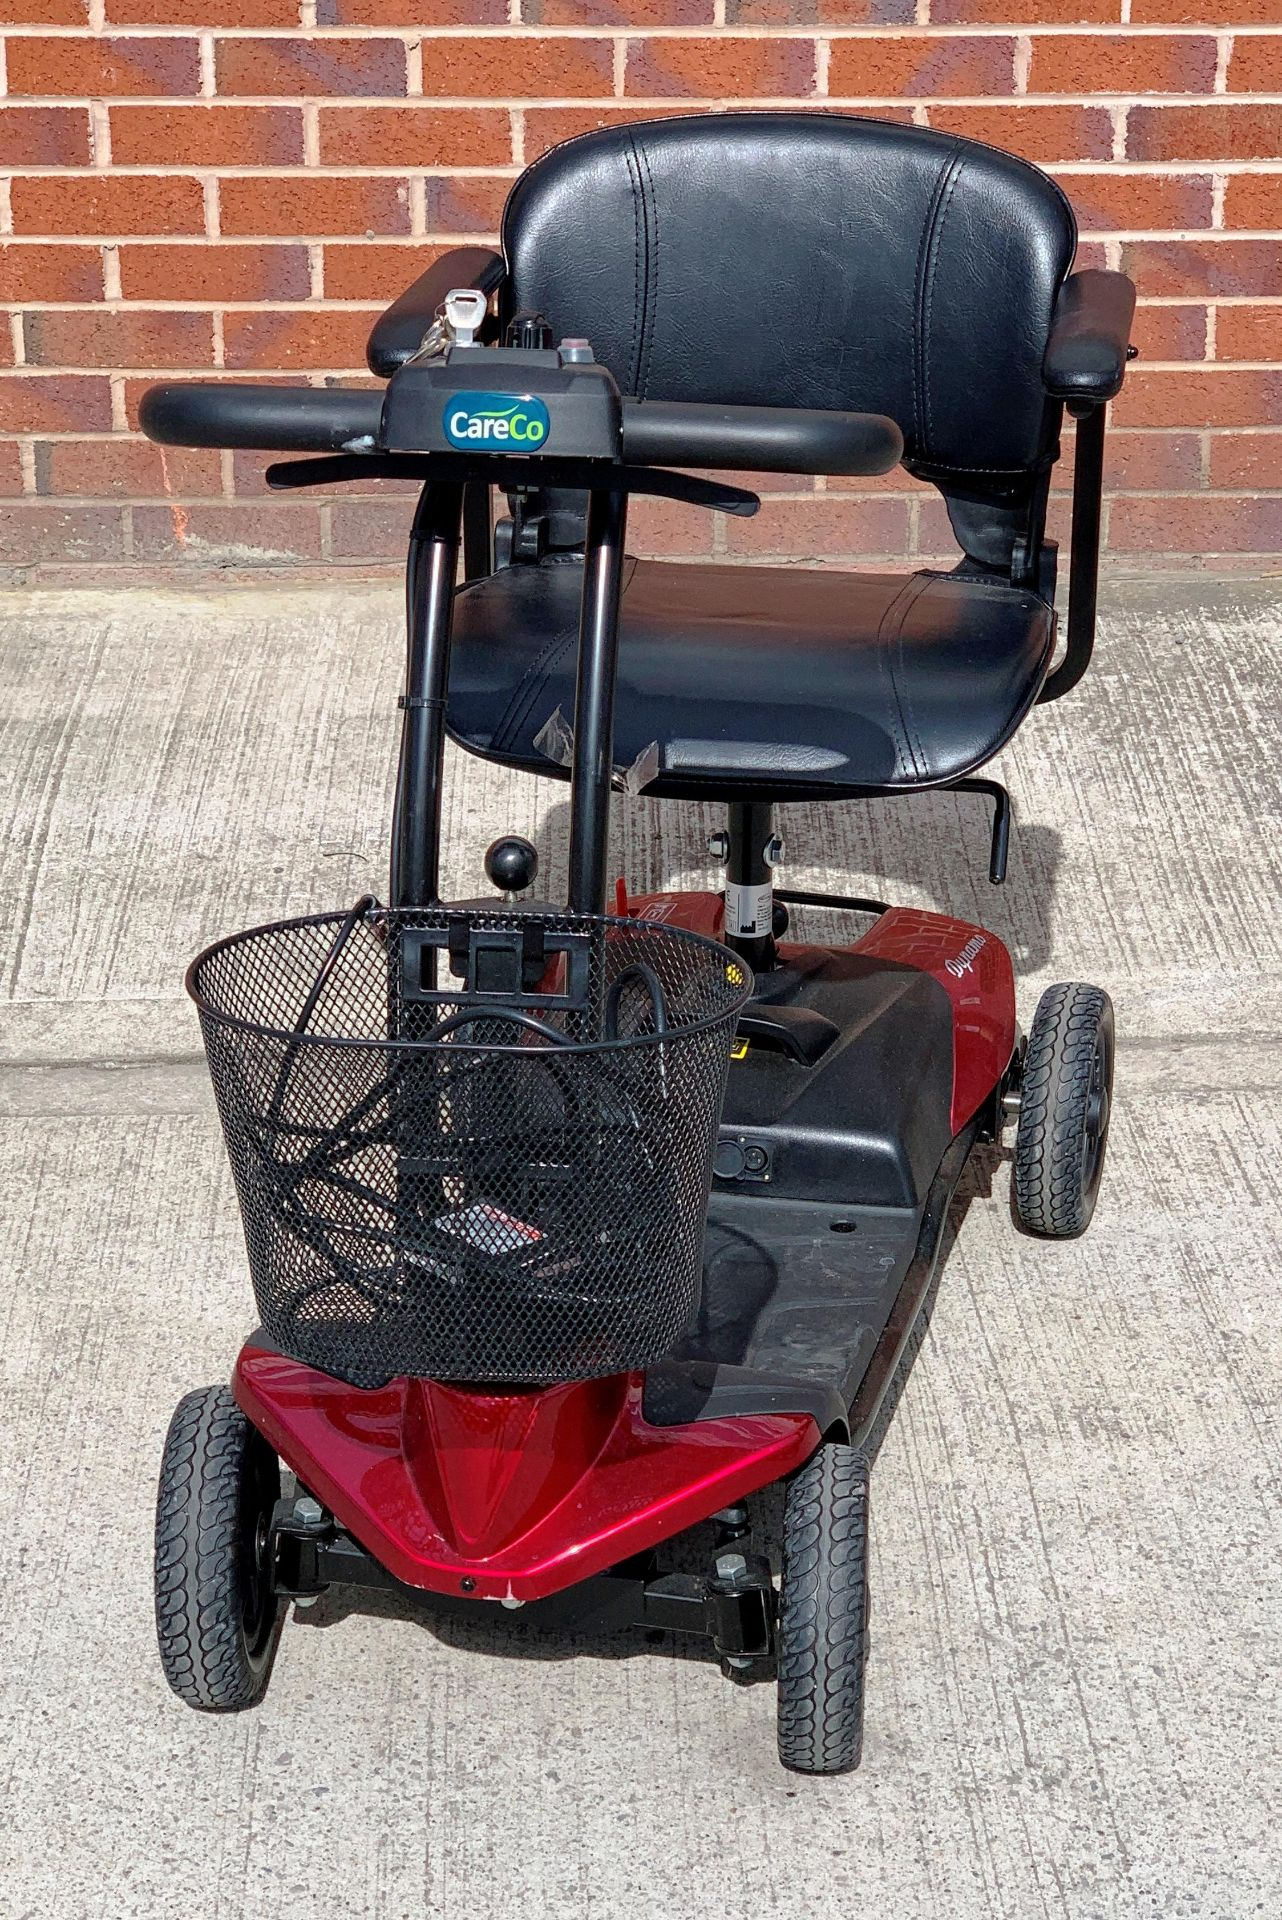 A CTM Dynamo 4 wheel mobility scooter - max weight 115 kg, S/N 18AHC6315 - date of manufacture 02. - Image 5 of 6